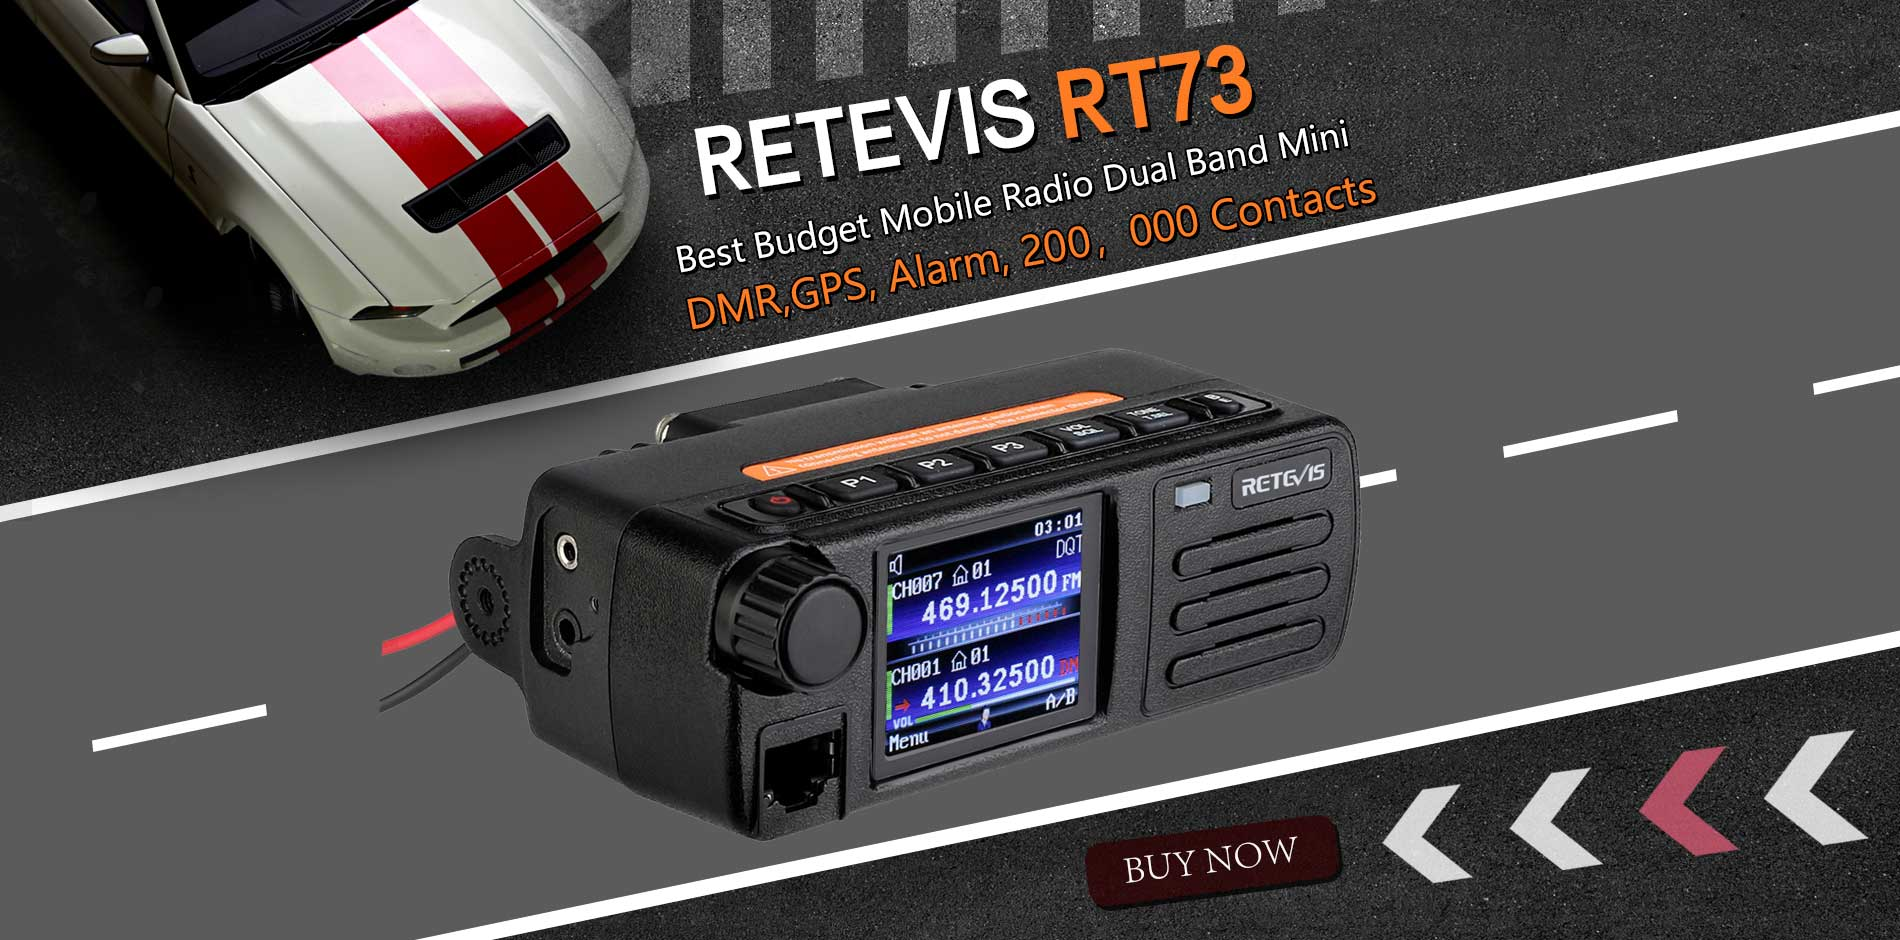 Great road company—— Retevis RT73 DMR Mobile radio!